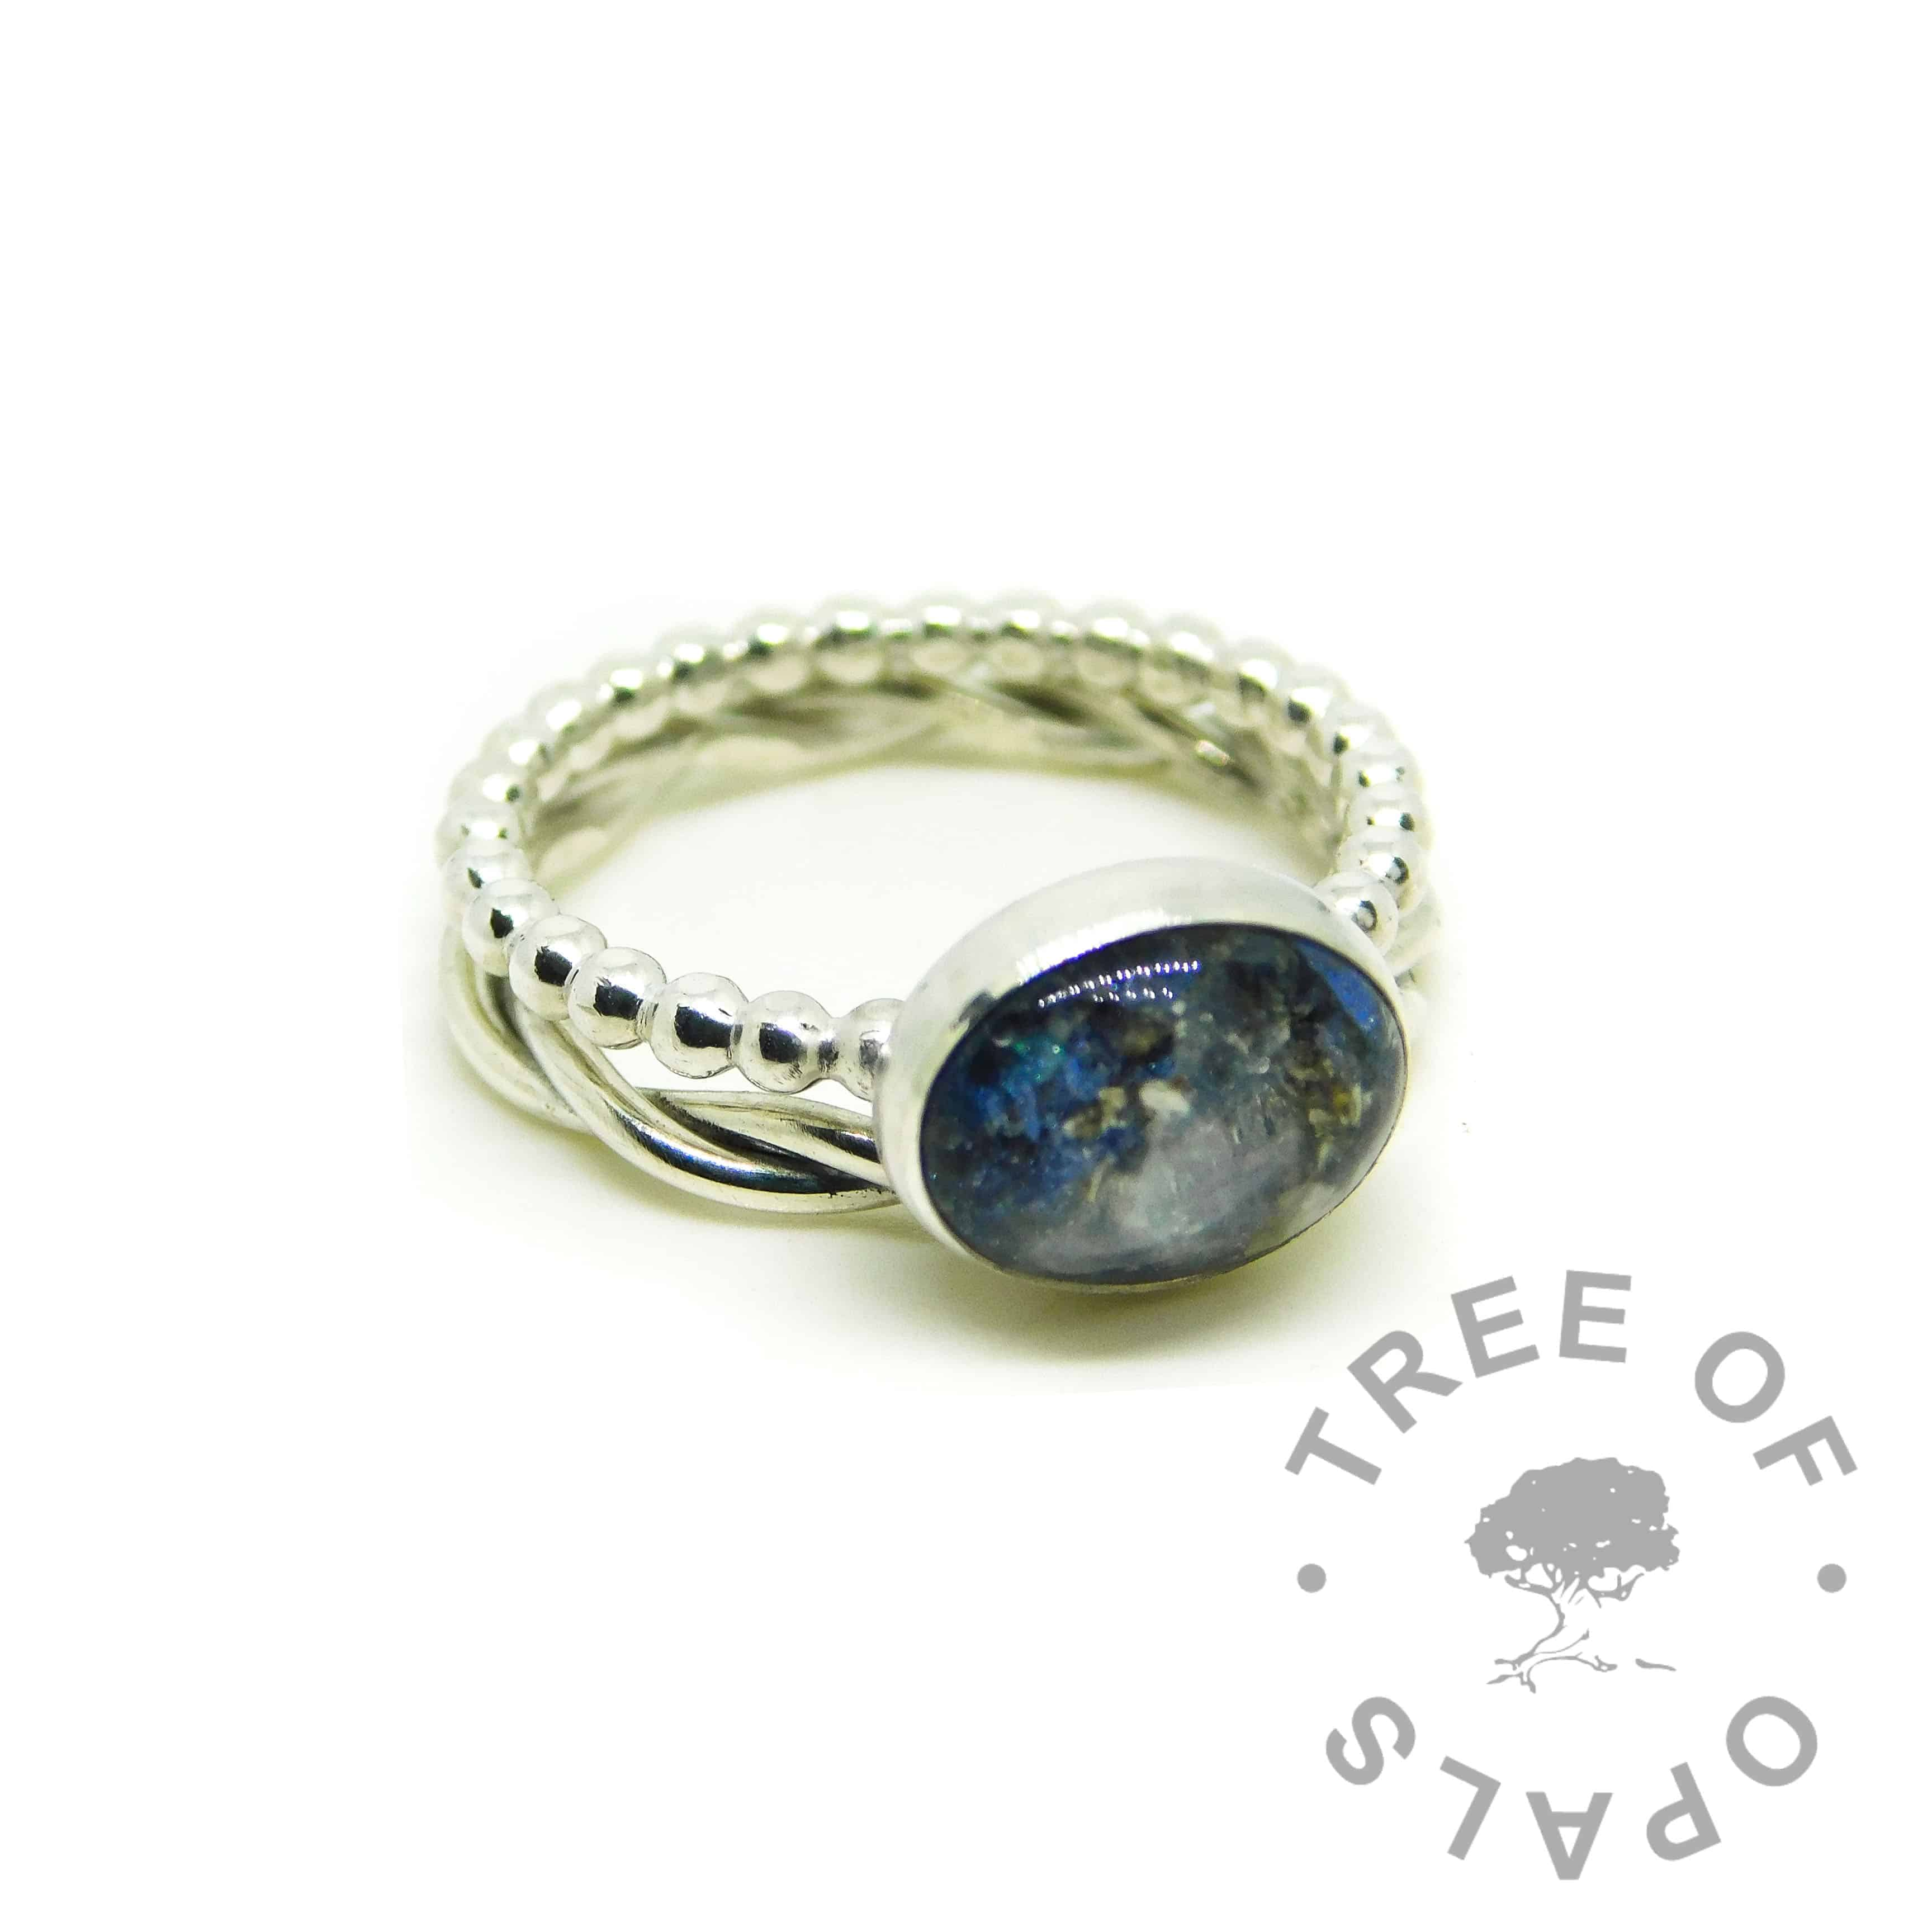 ash ring with Aegean blue resin sparkle mix and moonstone June birthstone, twisted wire stacking ring addition